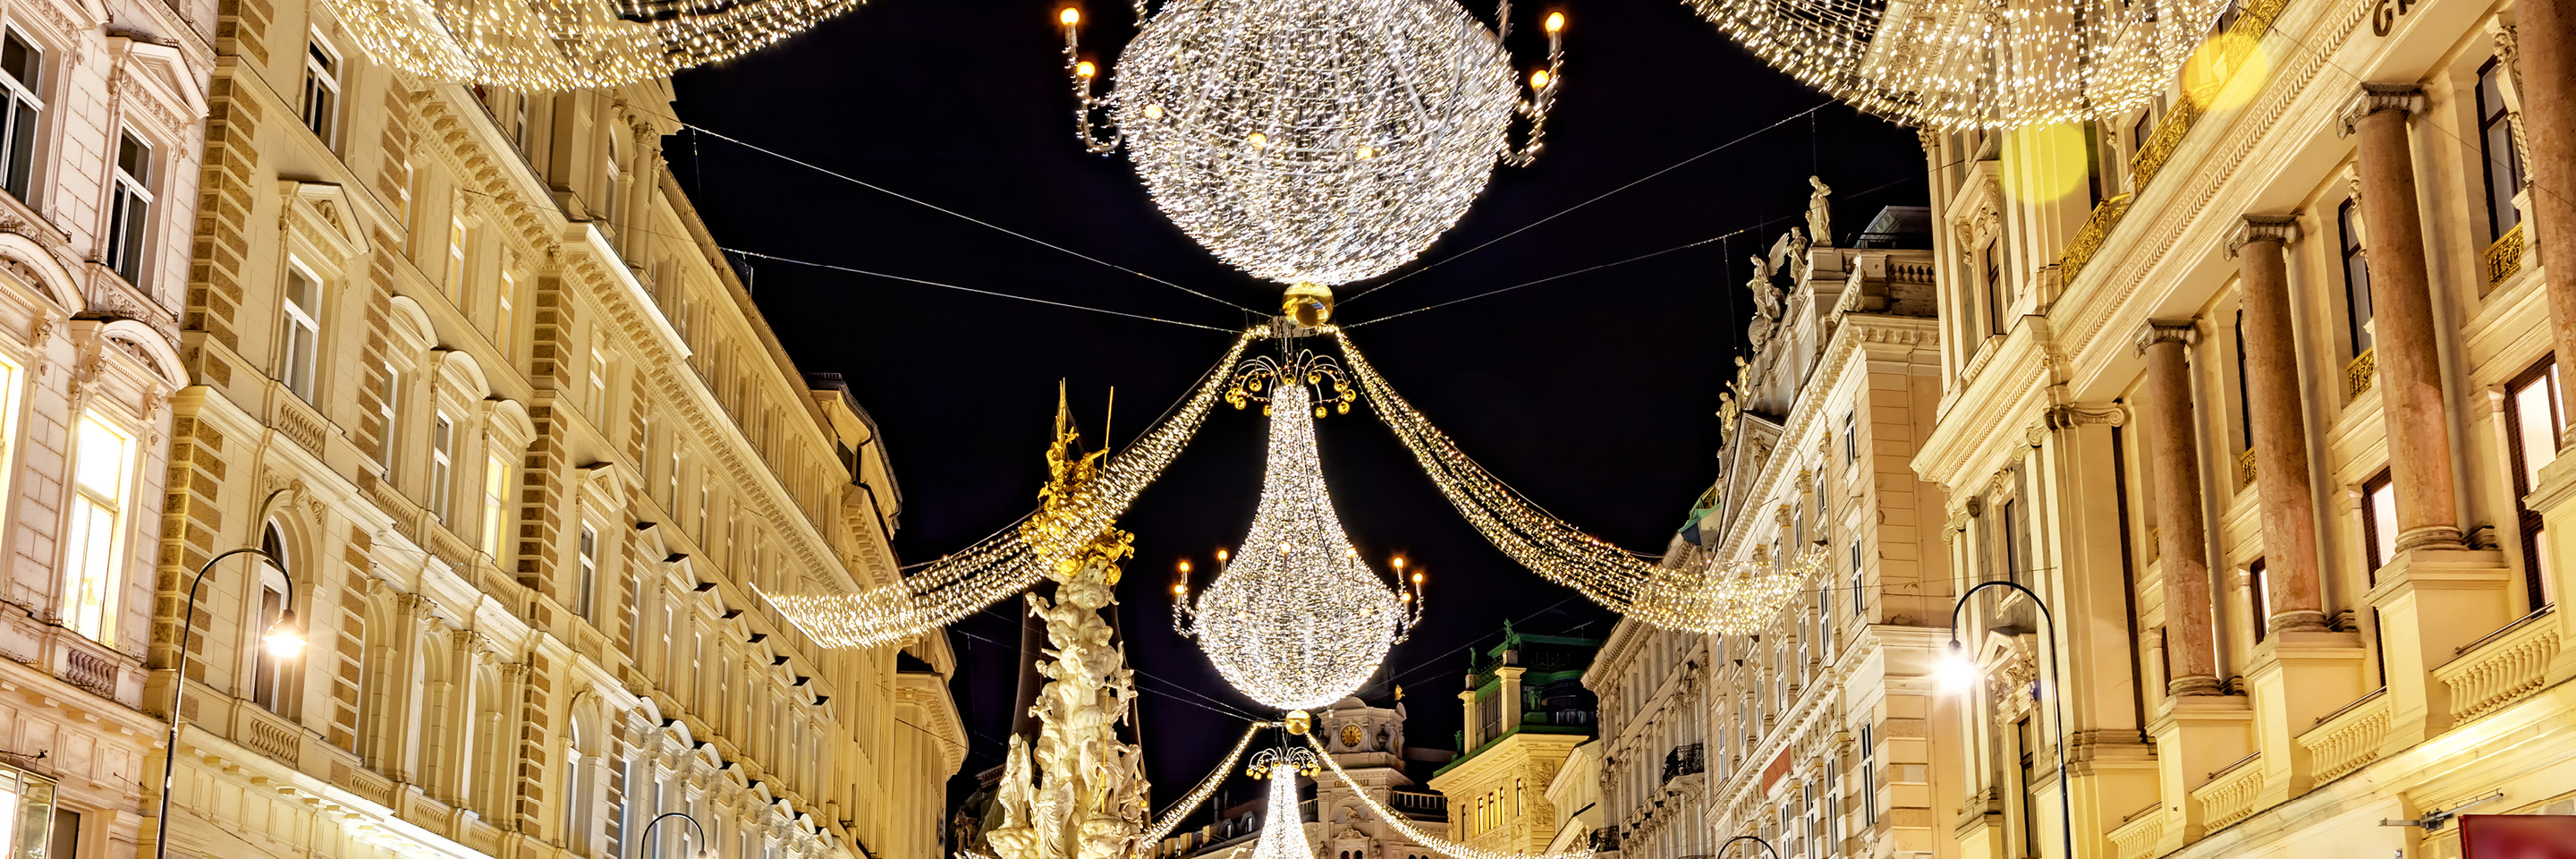 Festive Season on A Taste of the Danube with 2 Nights in Budapest & 2 Nights in Vienna (Westbound)